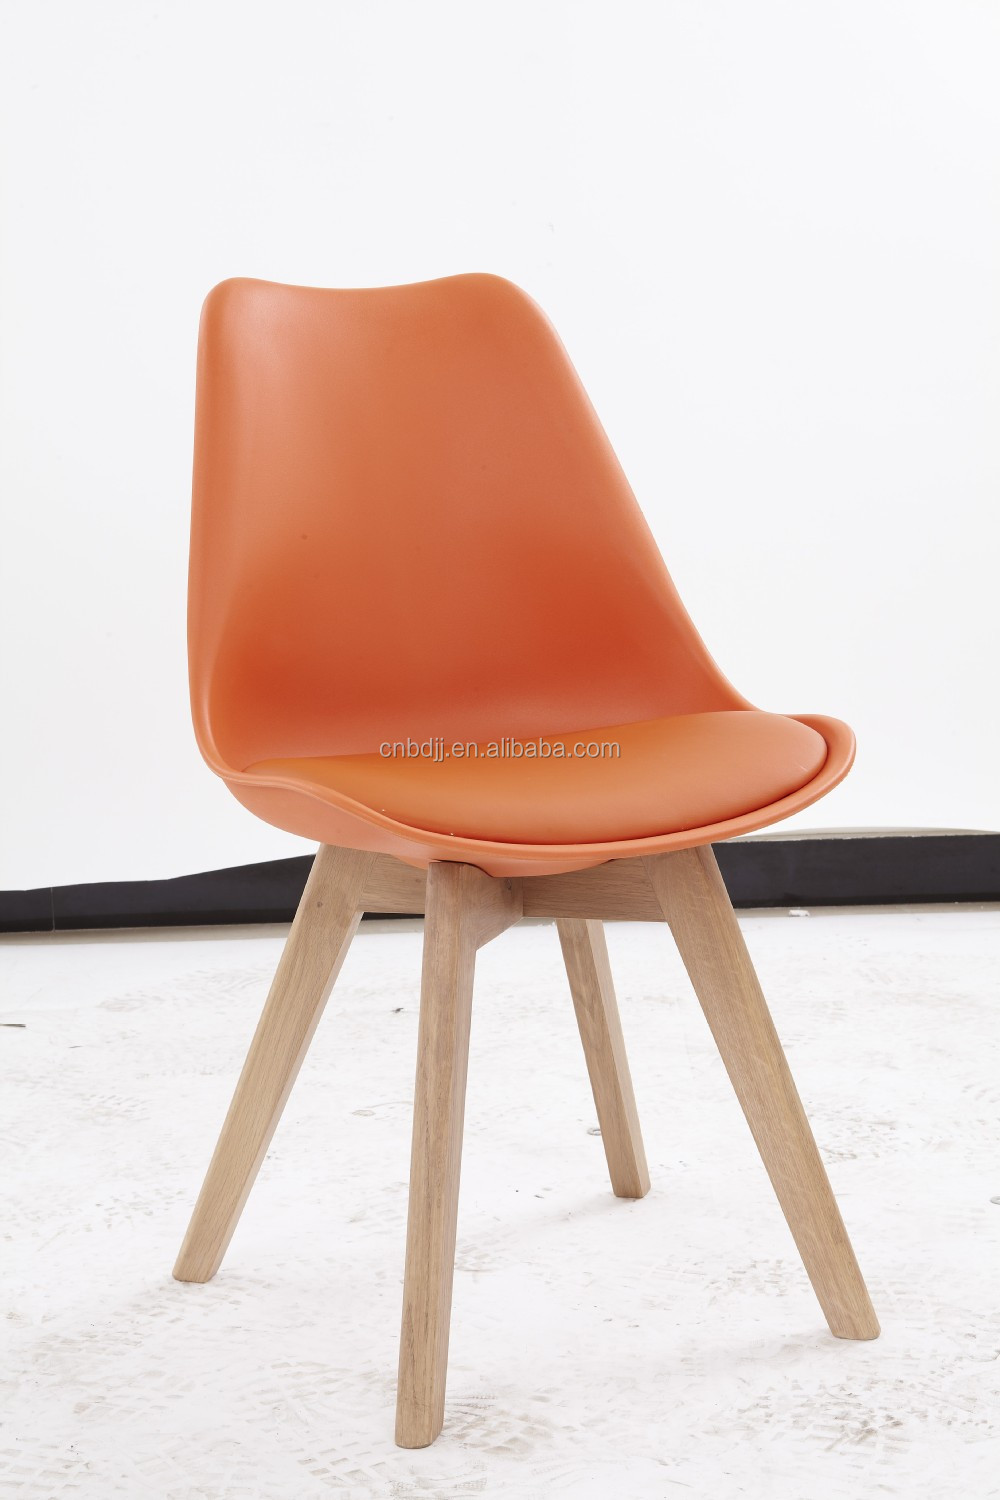 new arrival high quality cheap solid wooden legs plastic dining chair